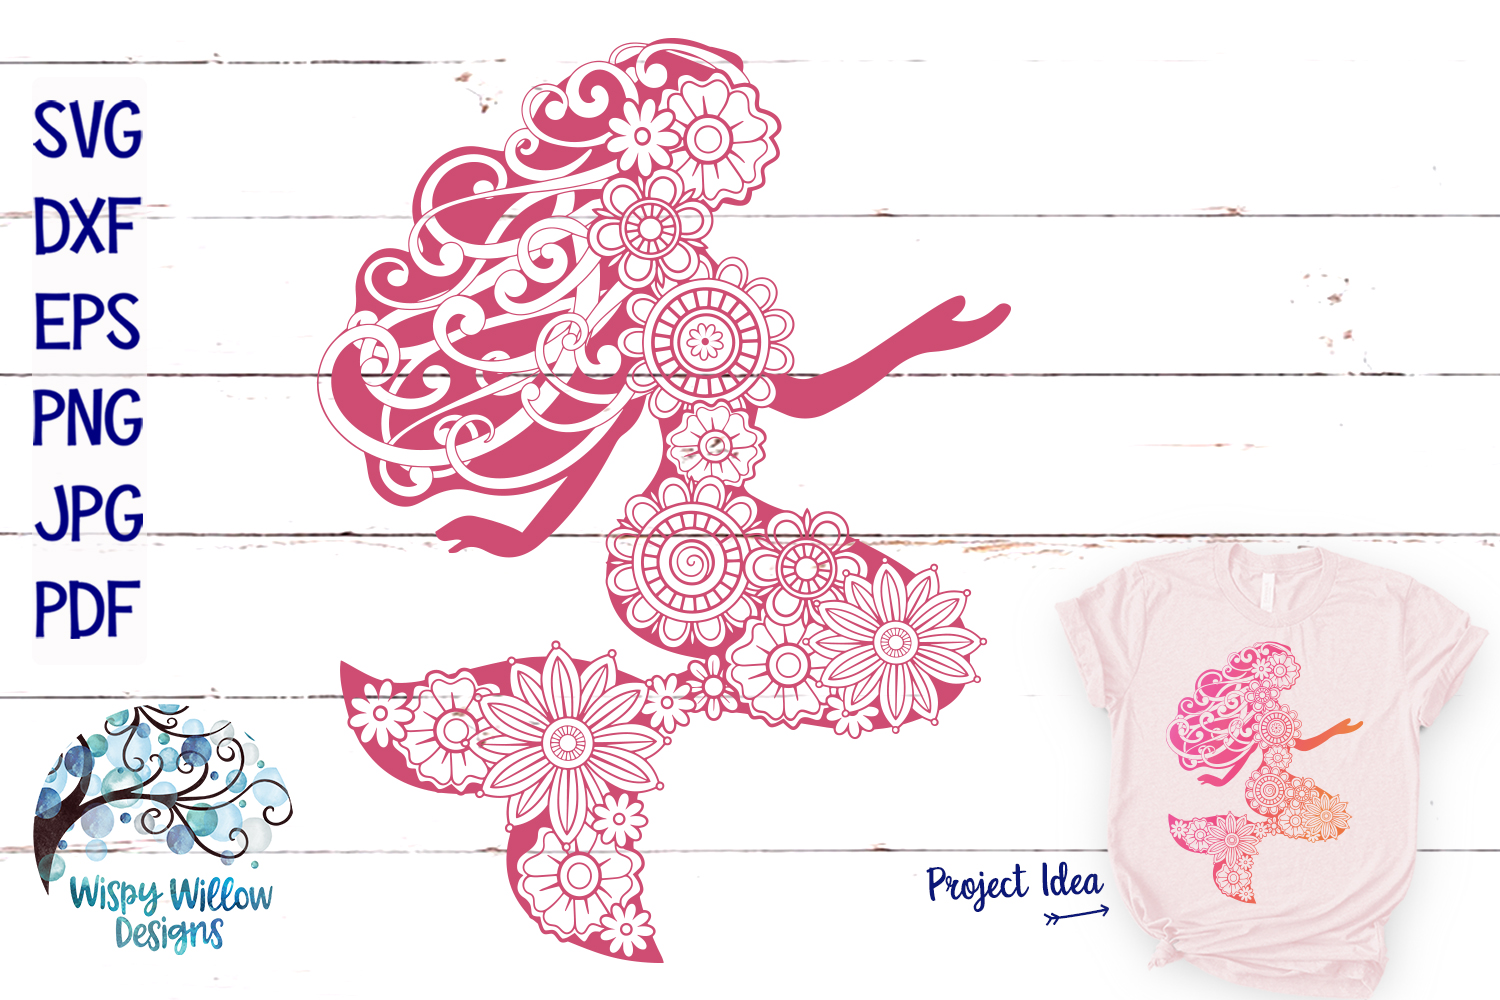 Floral Mermaid SVG | Summer SVG | Beach SVG Cut File example image 1